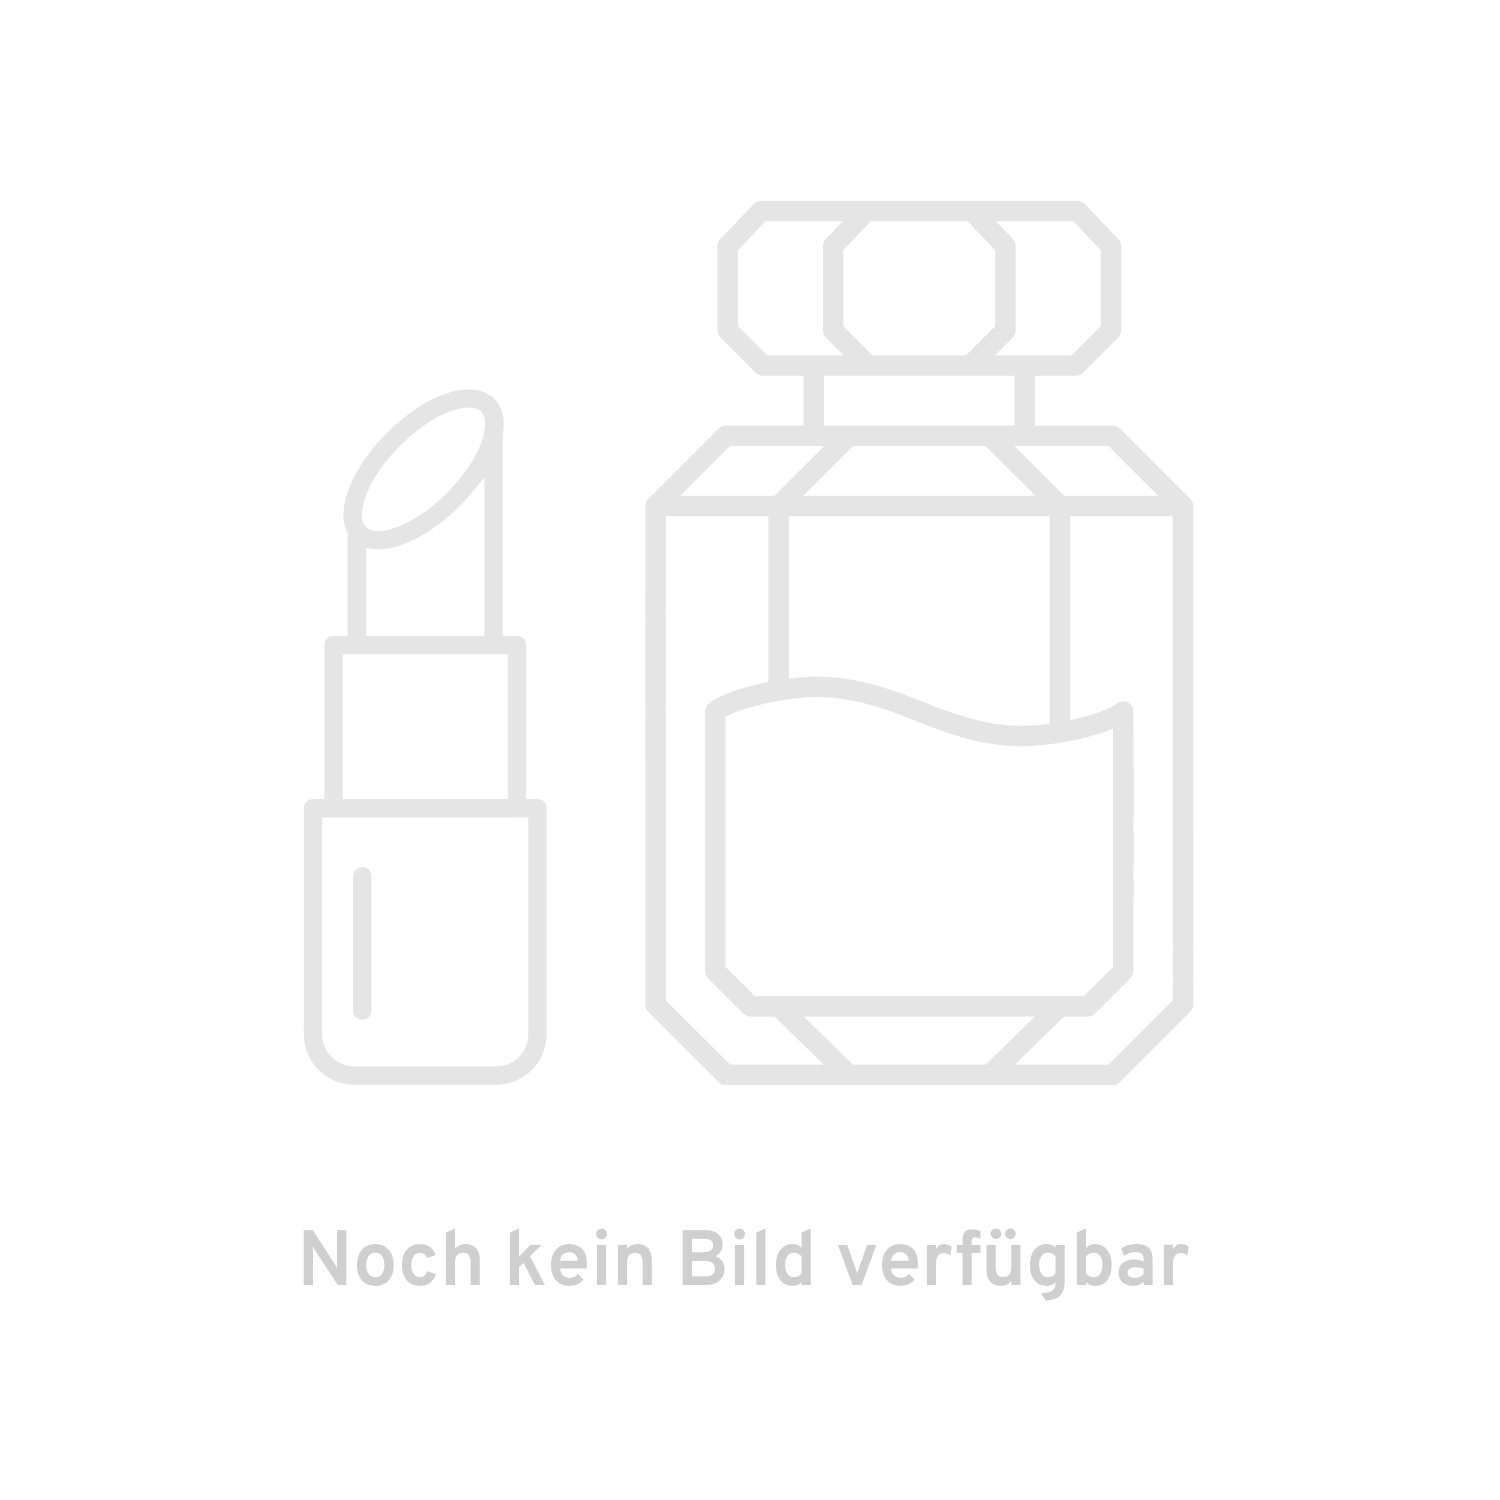 they're real double the lip